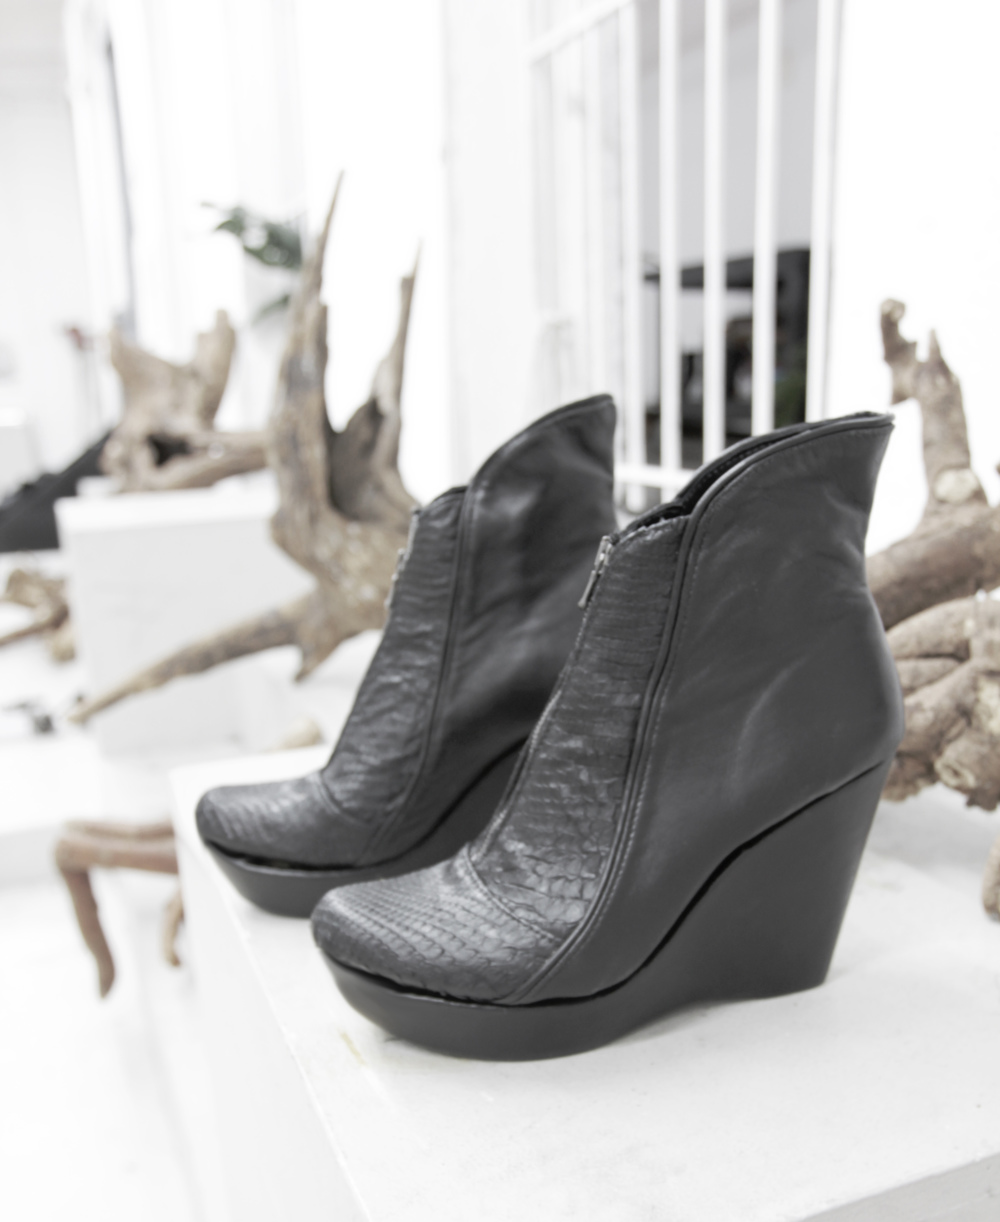 Hand-sewn snakeskin and leather wedges created for use as an alternative for stilt-walking